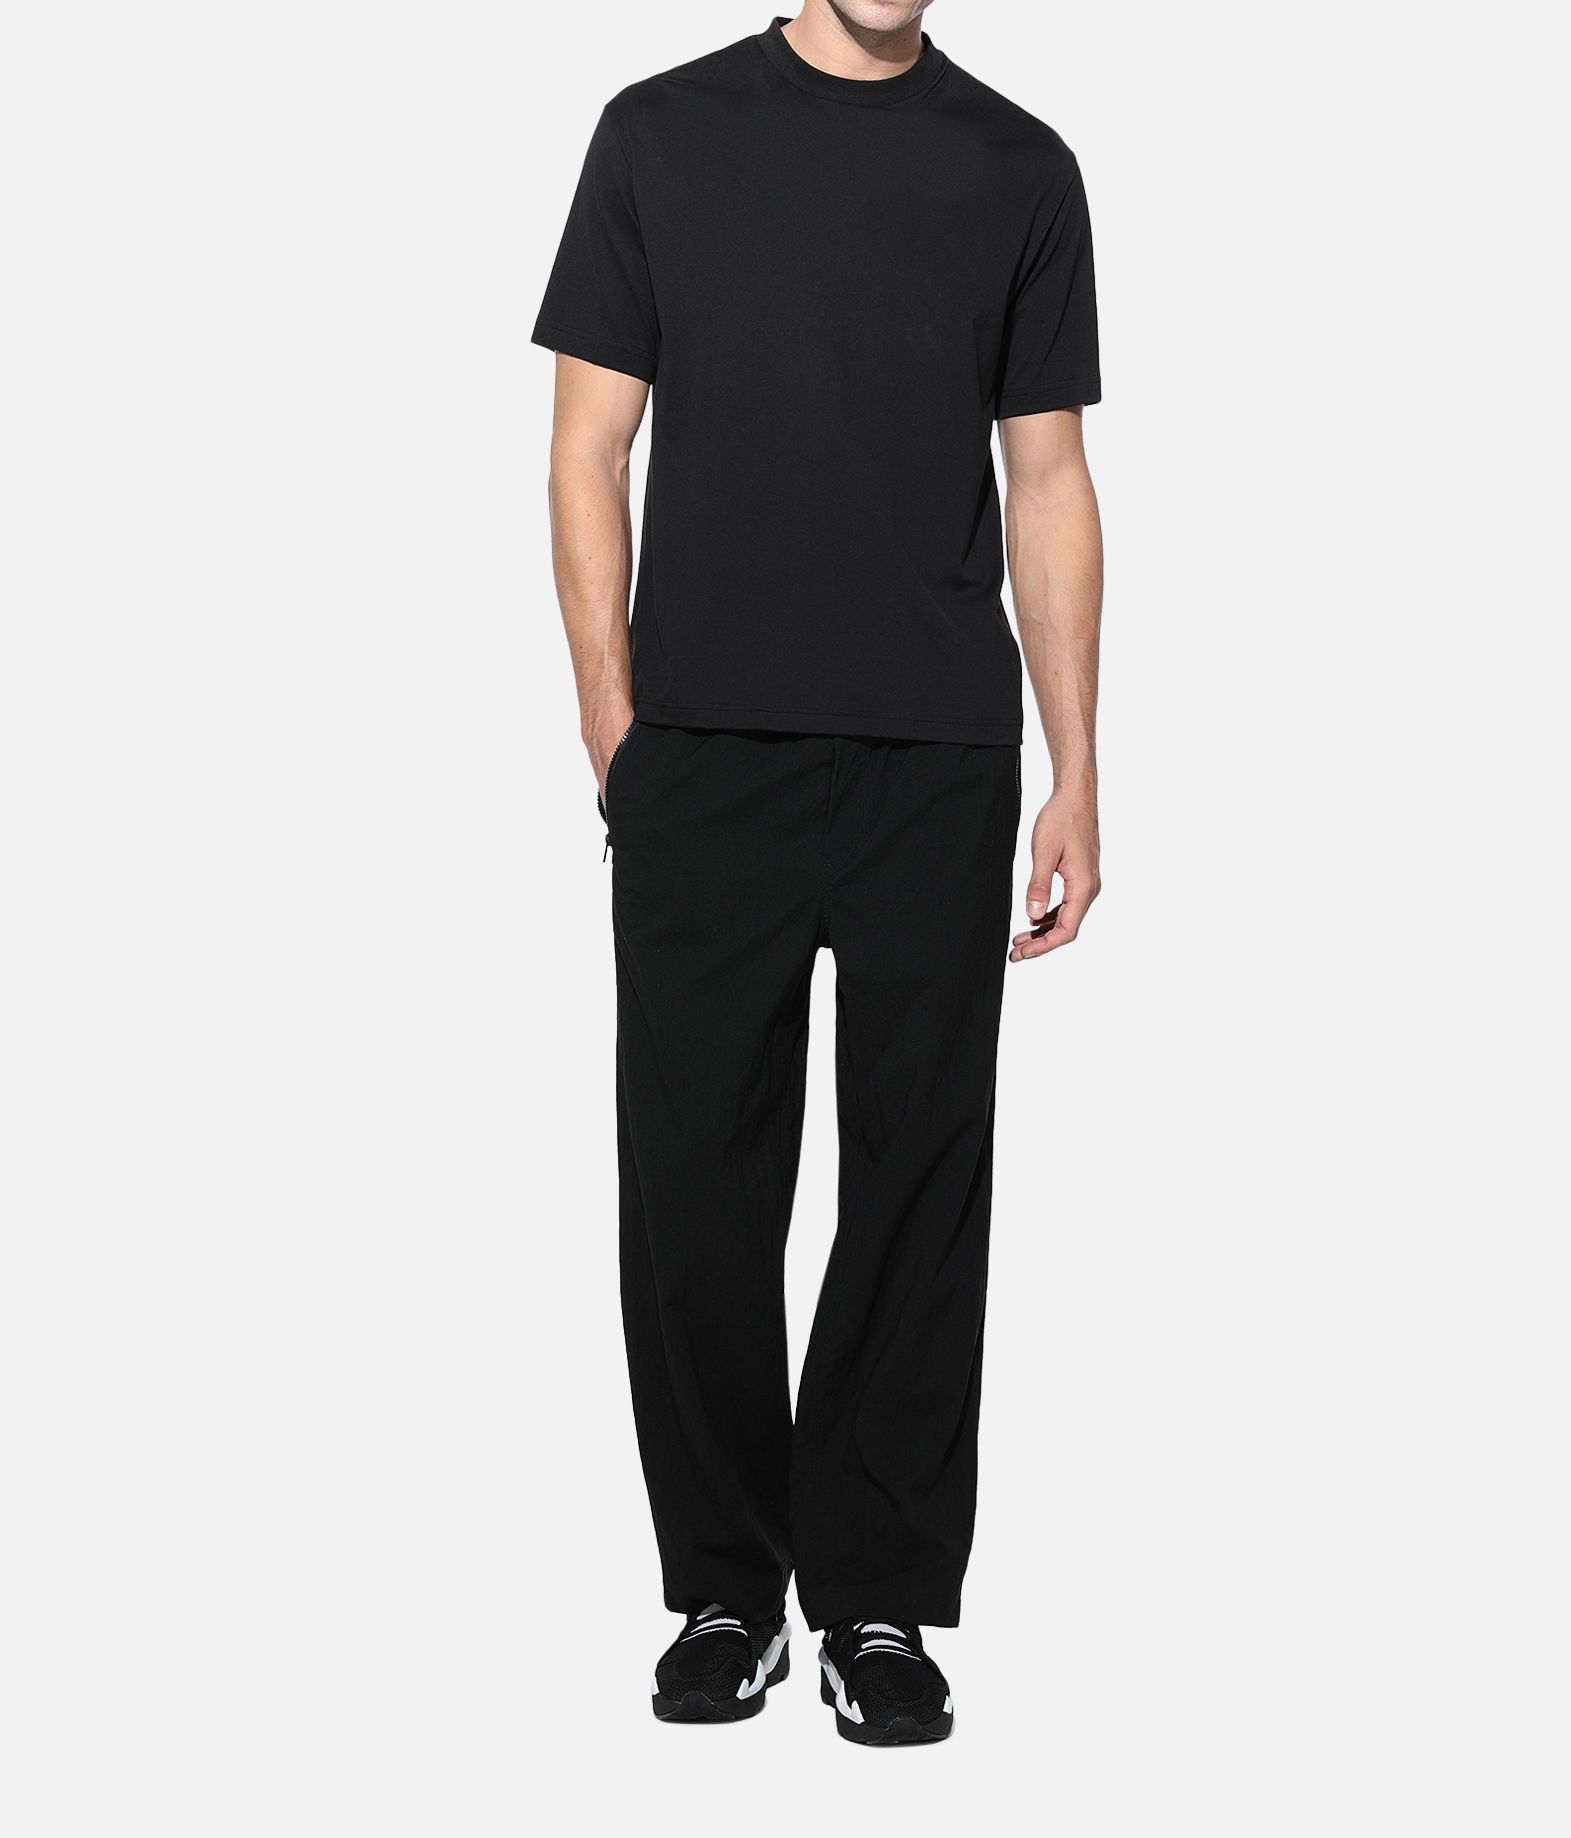 Y-3 Y-3 Signature Graphic Tee Short sleeve t-shirt Man a